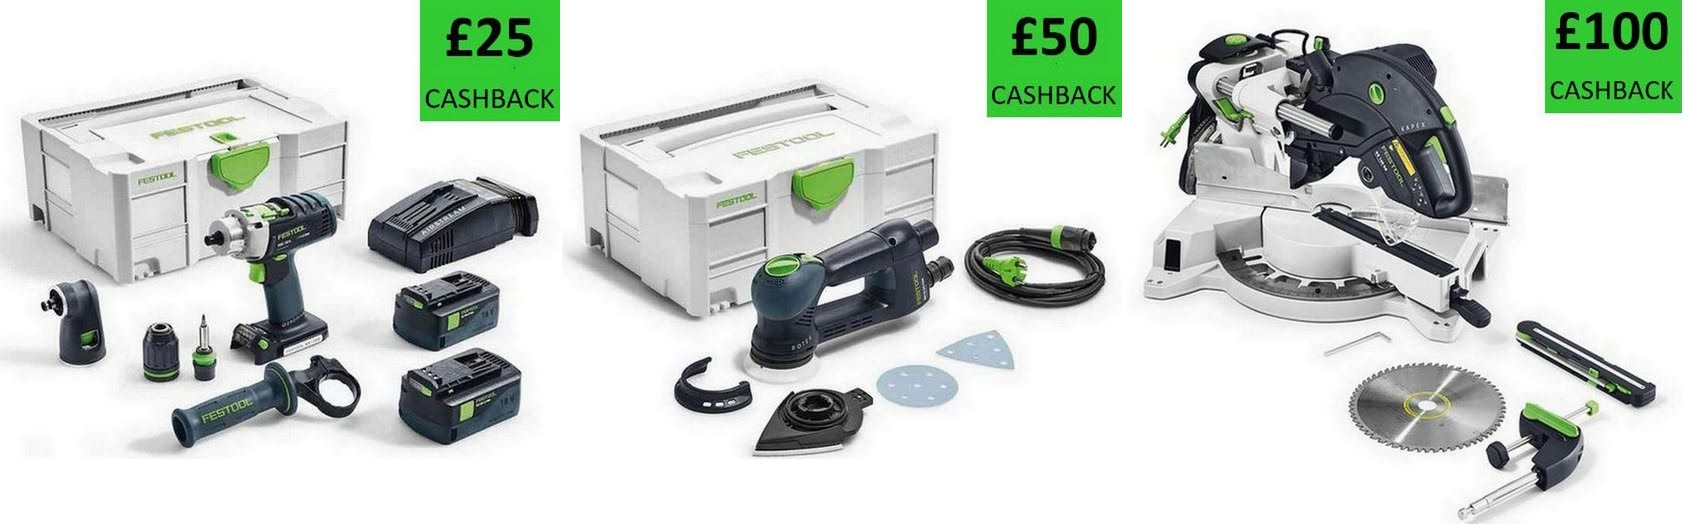 Festool cashback deals